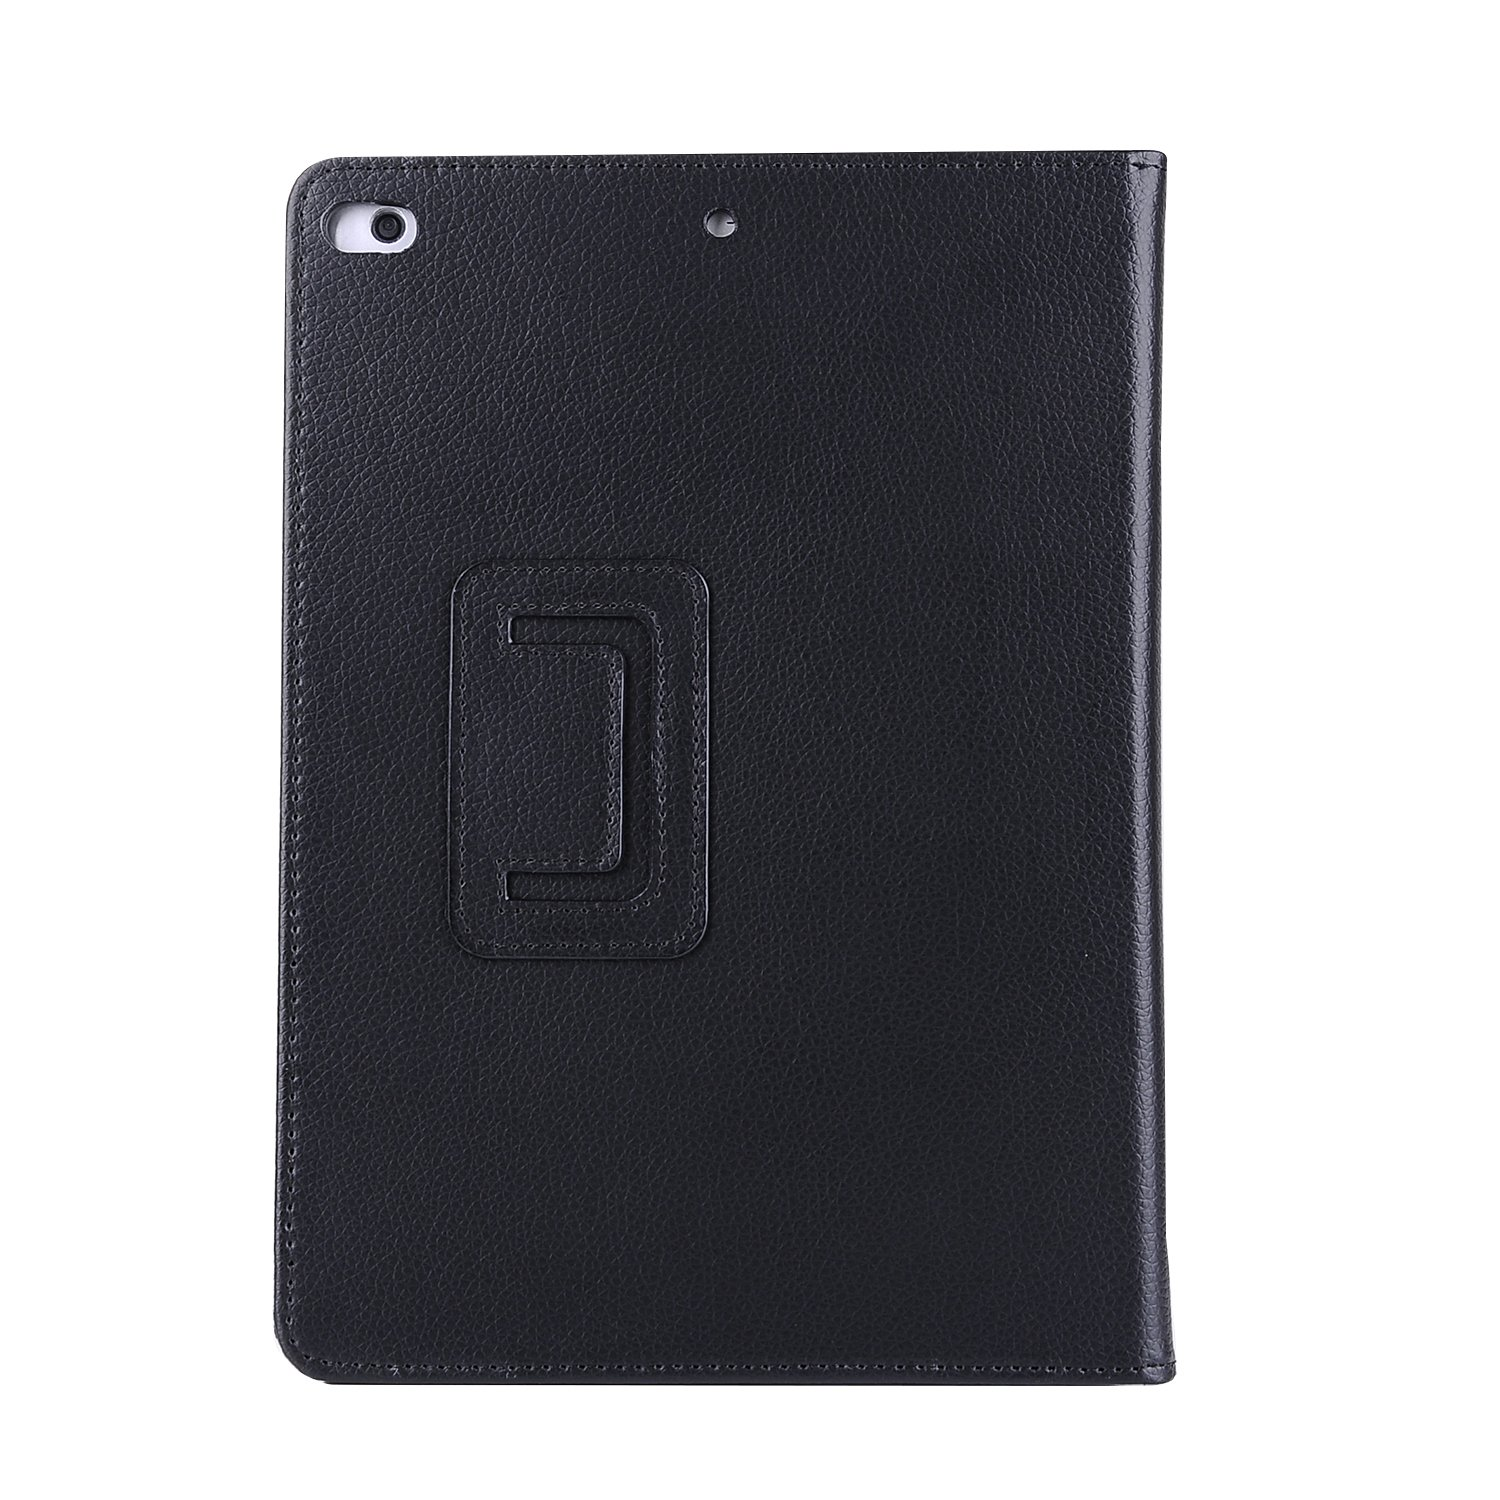 Apple Foilo-Stand Funda A2232 Capa Case 7th iPad A2200 for Cover Tablet A2197